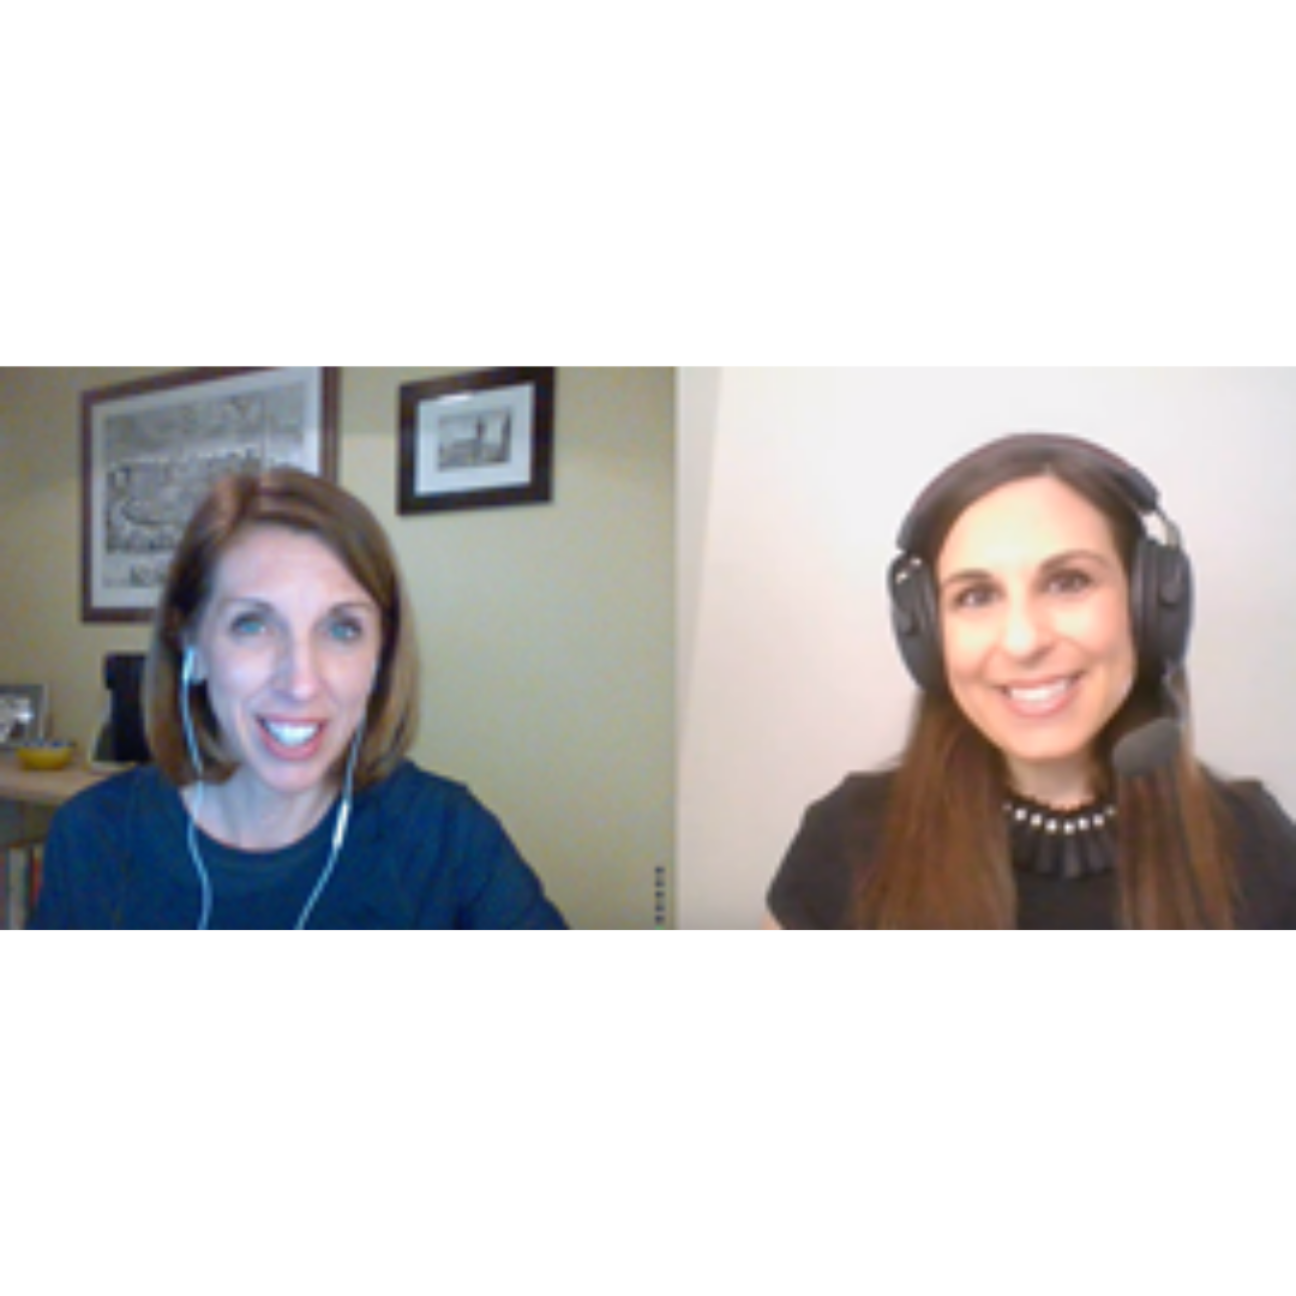 092 Menopause care and education in the United States and Britain - Heather Hirsch and Dr Louise Newson